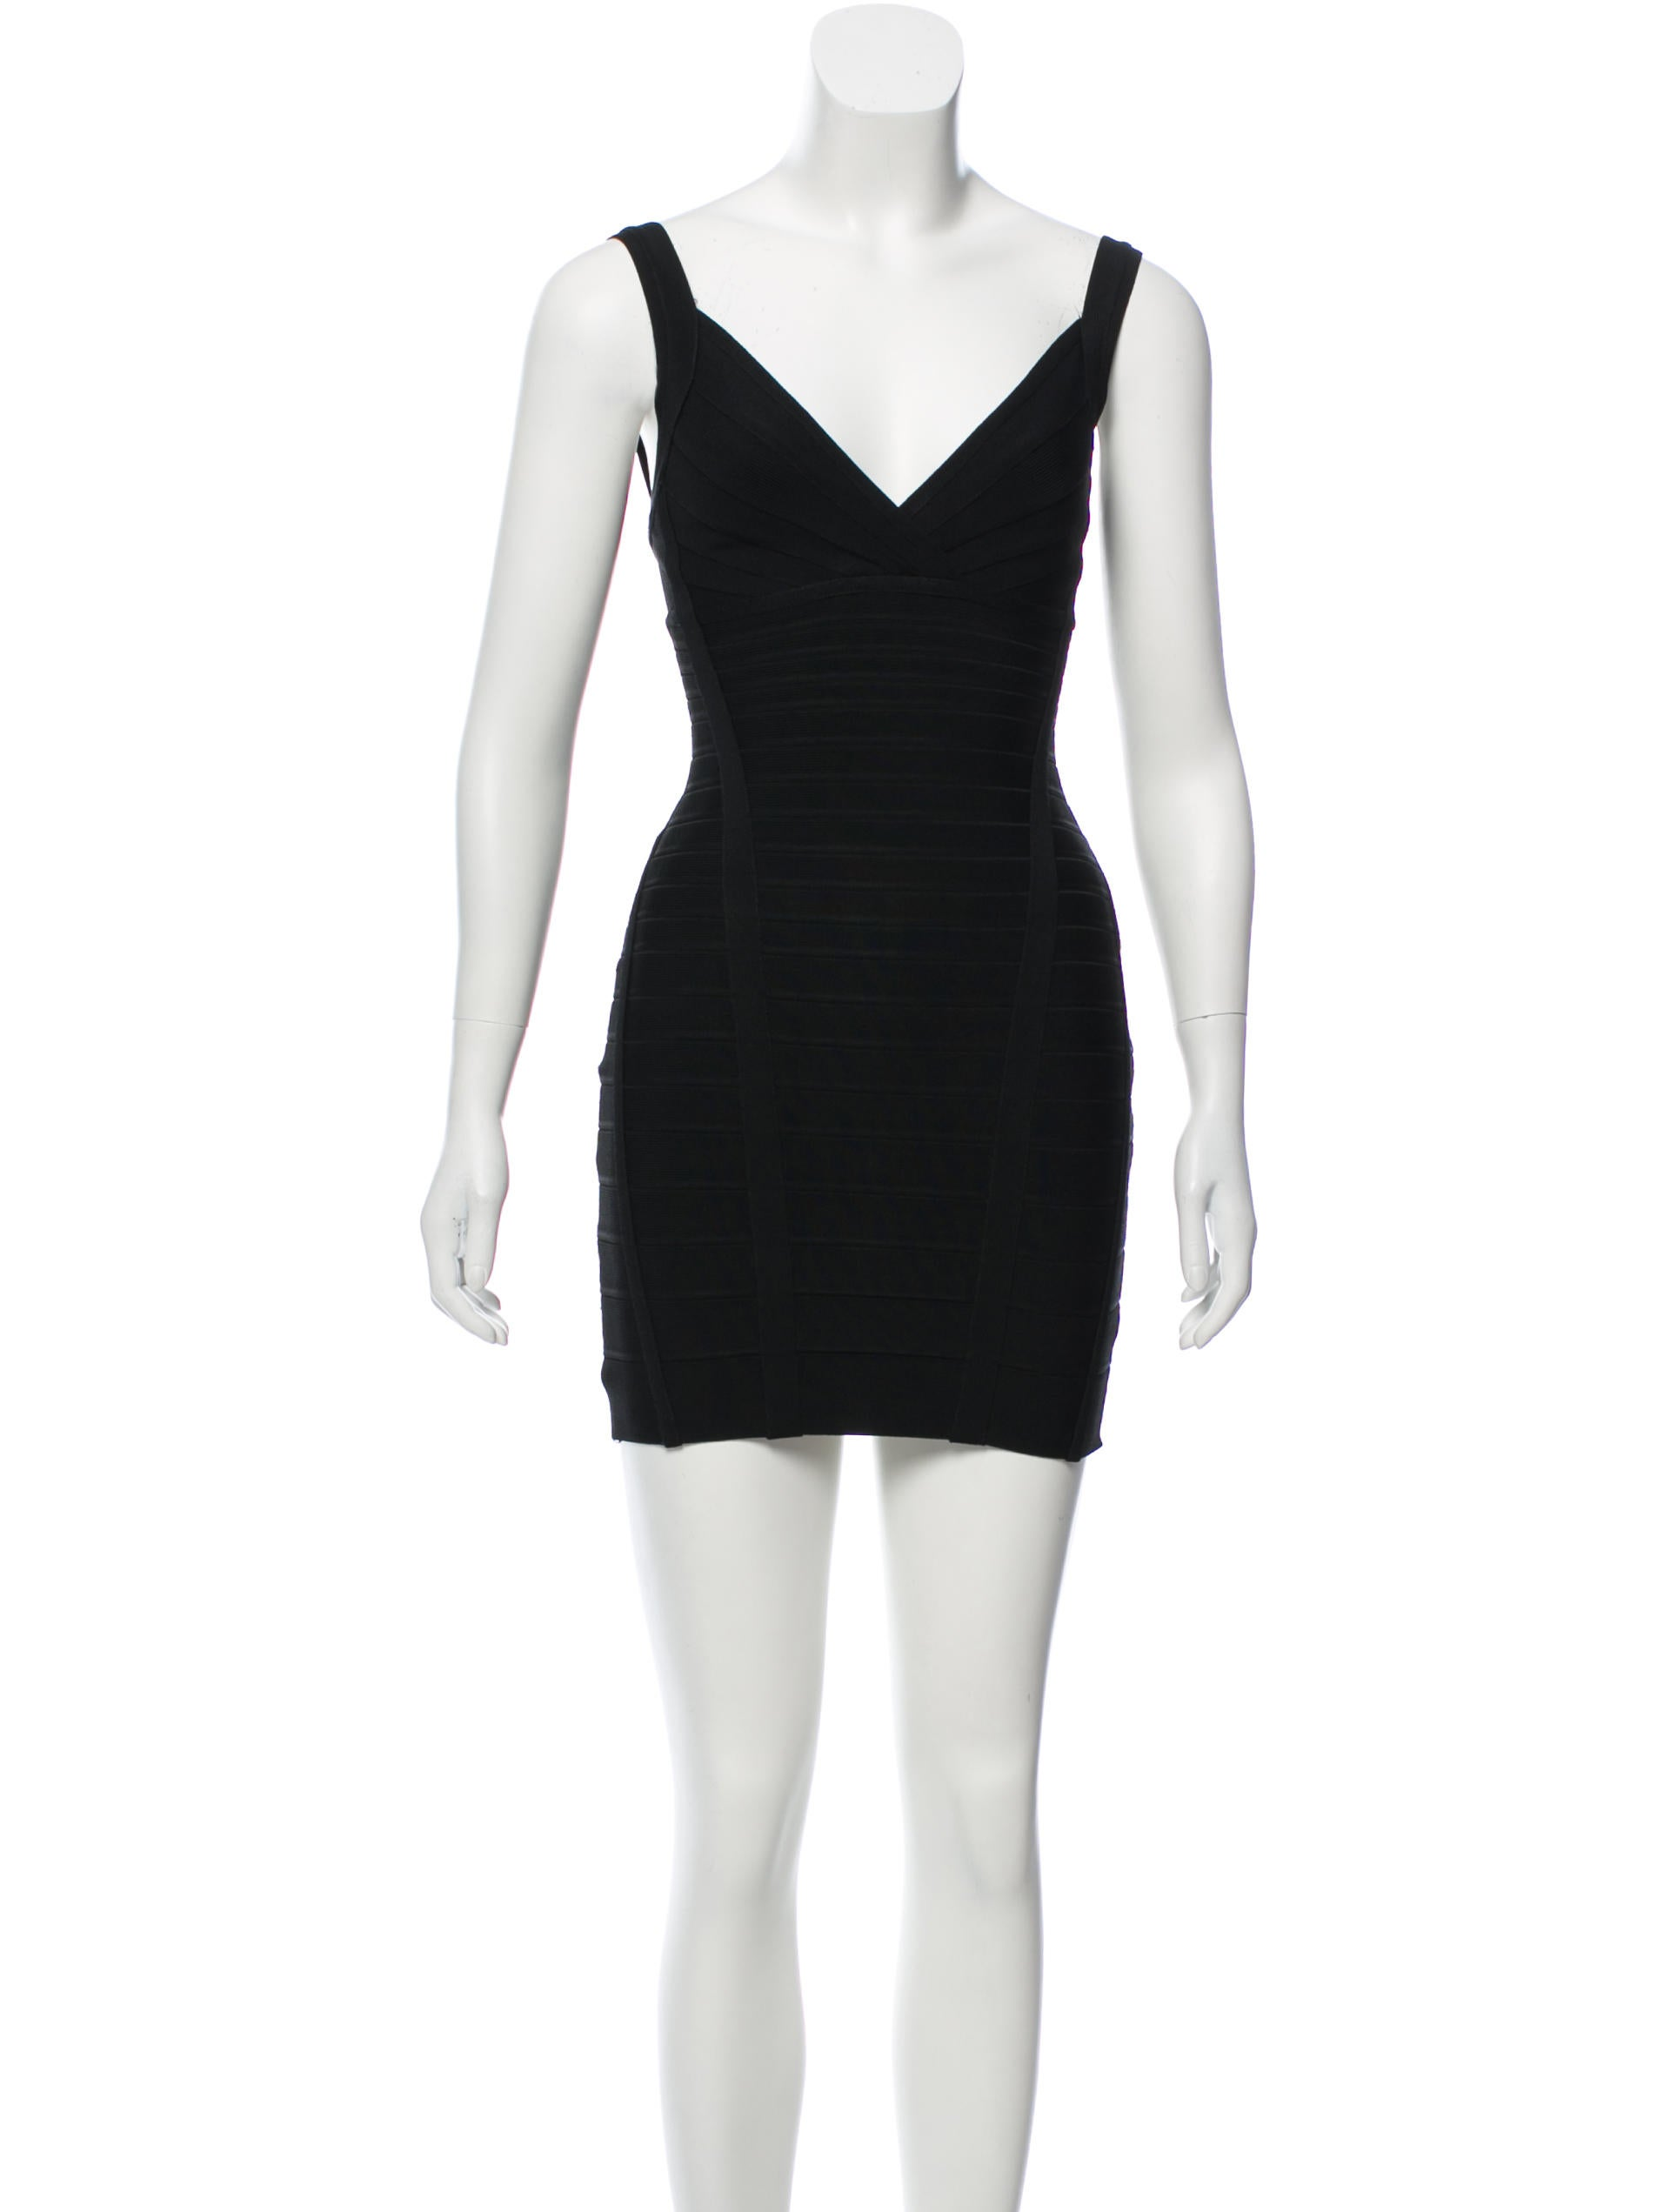 12e7d86bde22 Herve Leger Nadya Bandage Dress - Clothing - HEV36248